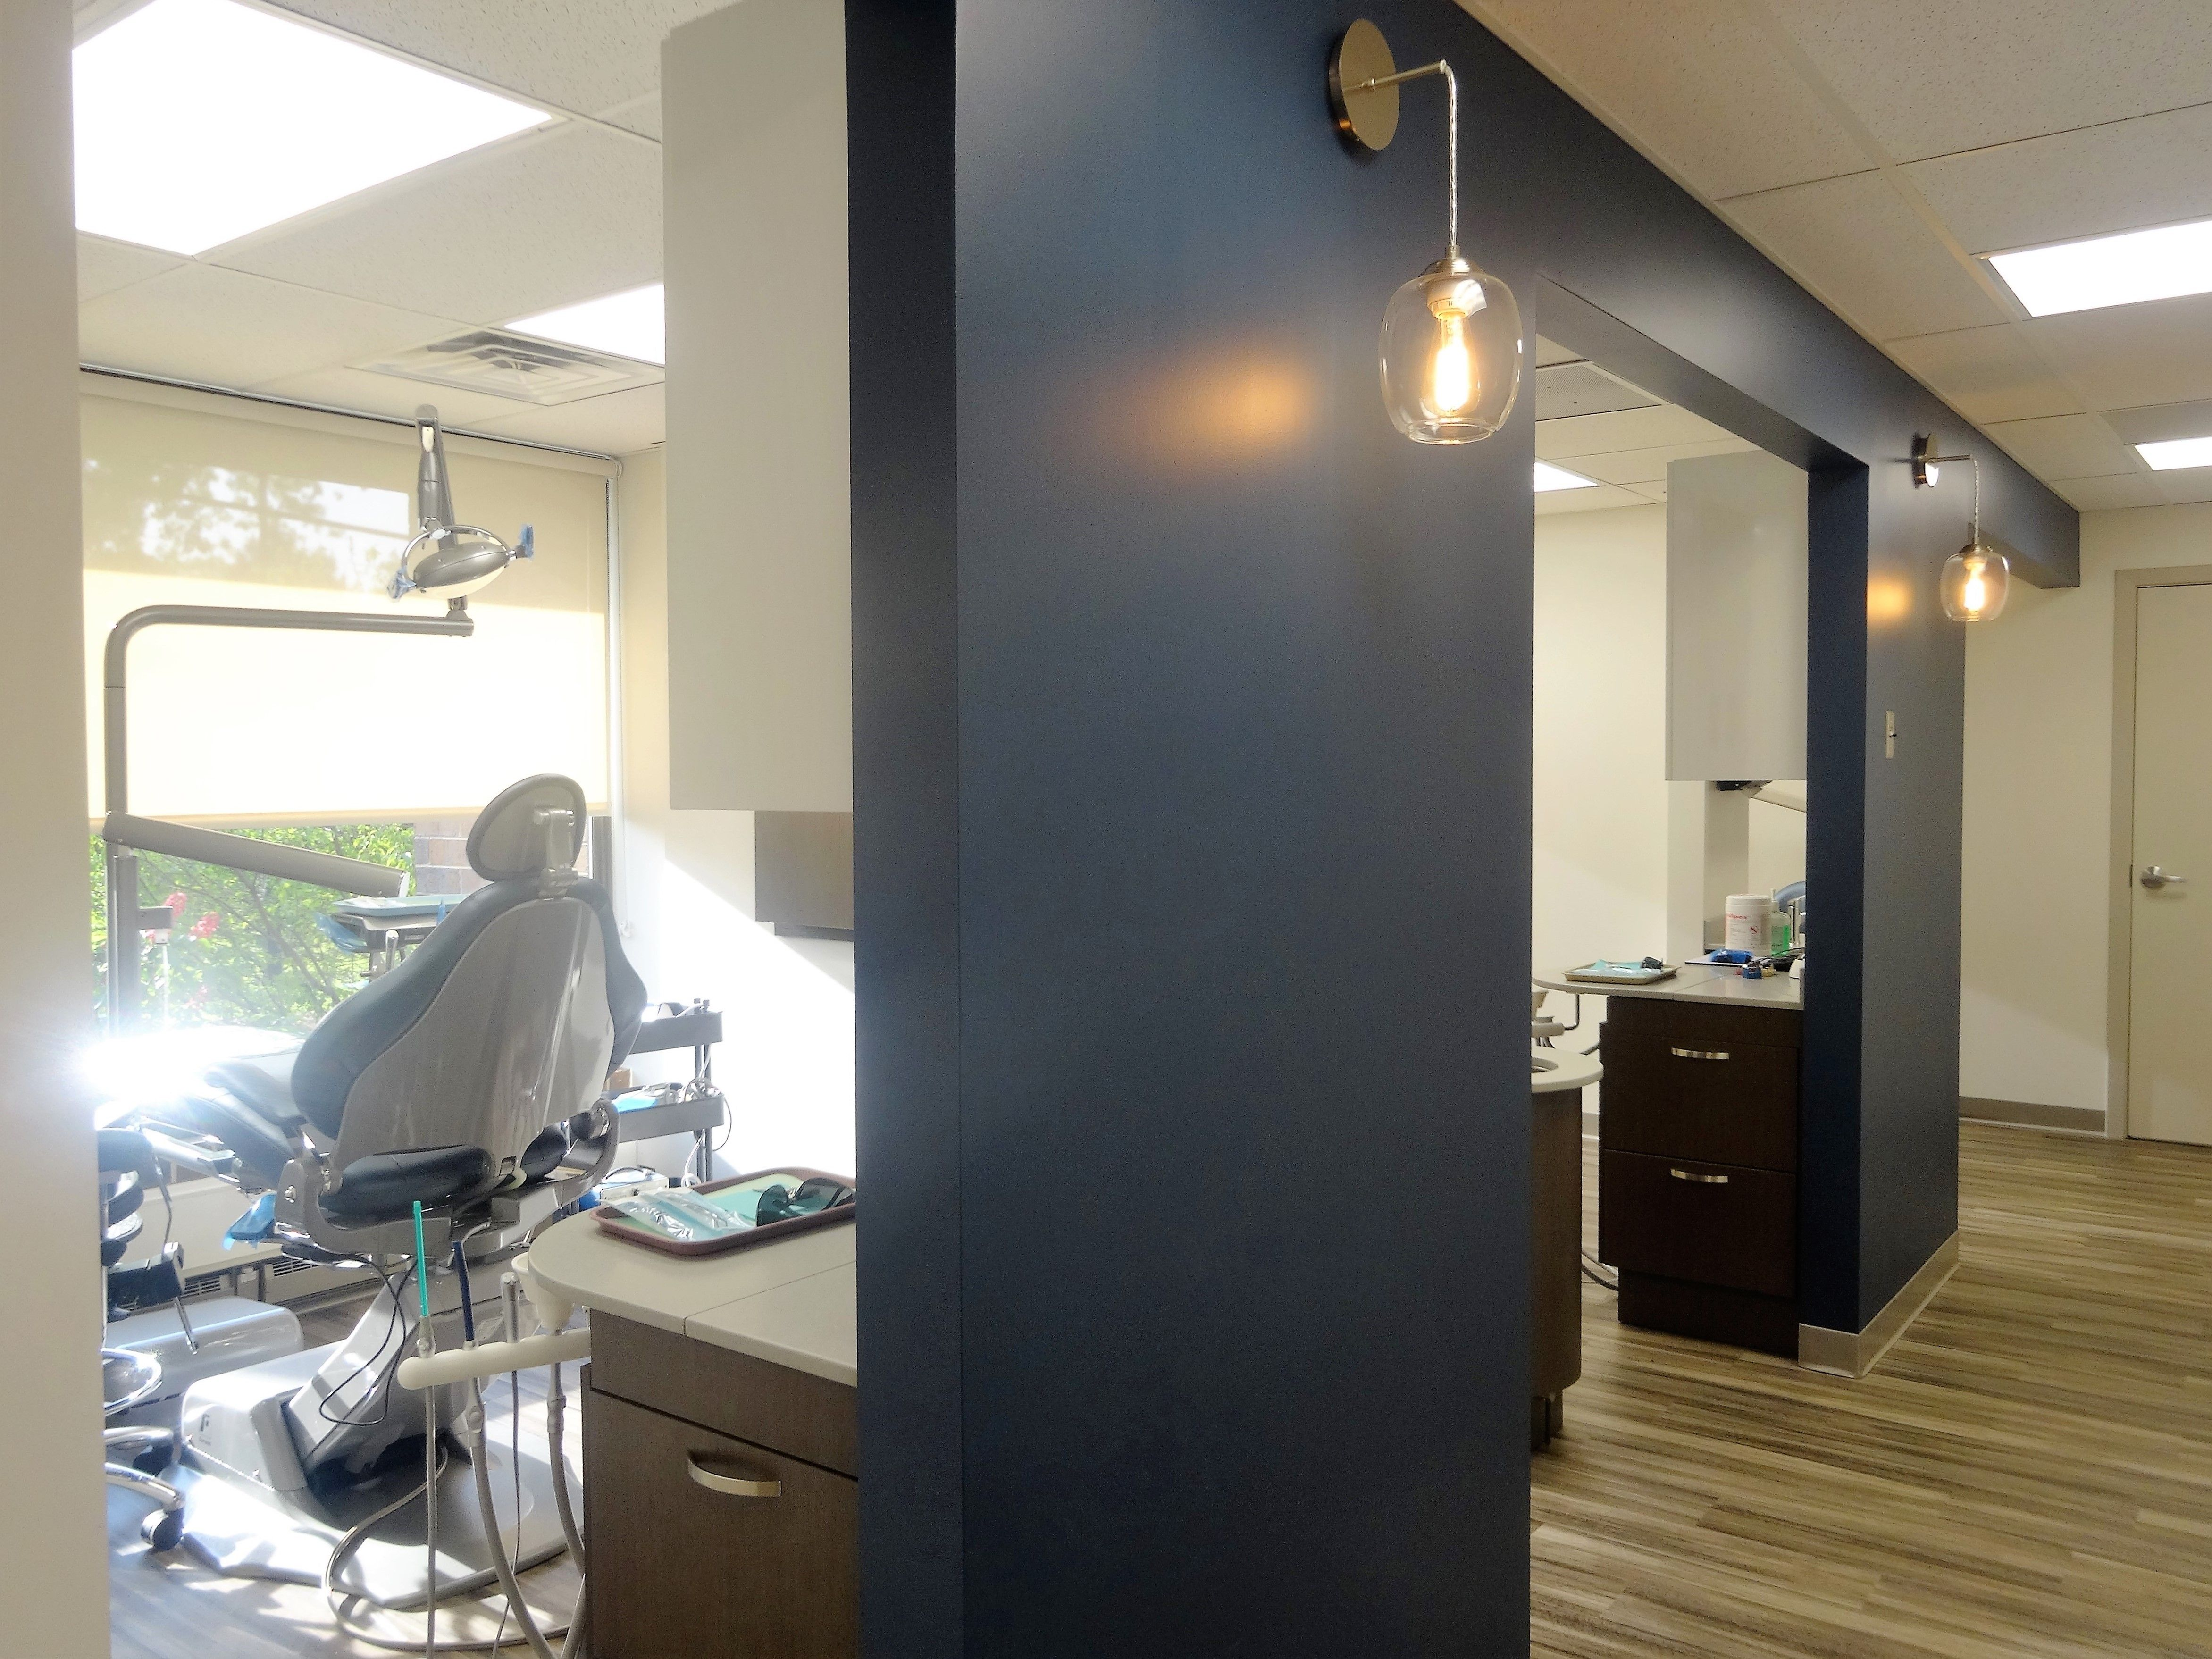 Dental studio designed by Apex Team for Kampfer Dental Studio. It includes  Design and Construction of a new 1,100 sq. ft. 4-Operatory dental offic